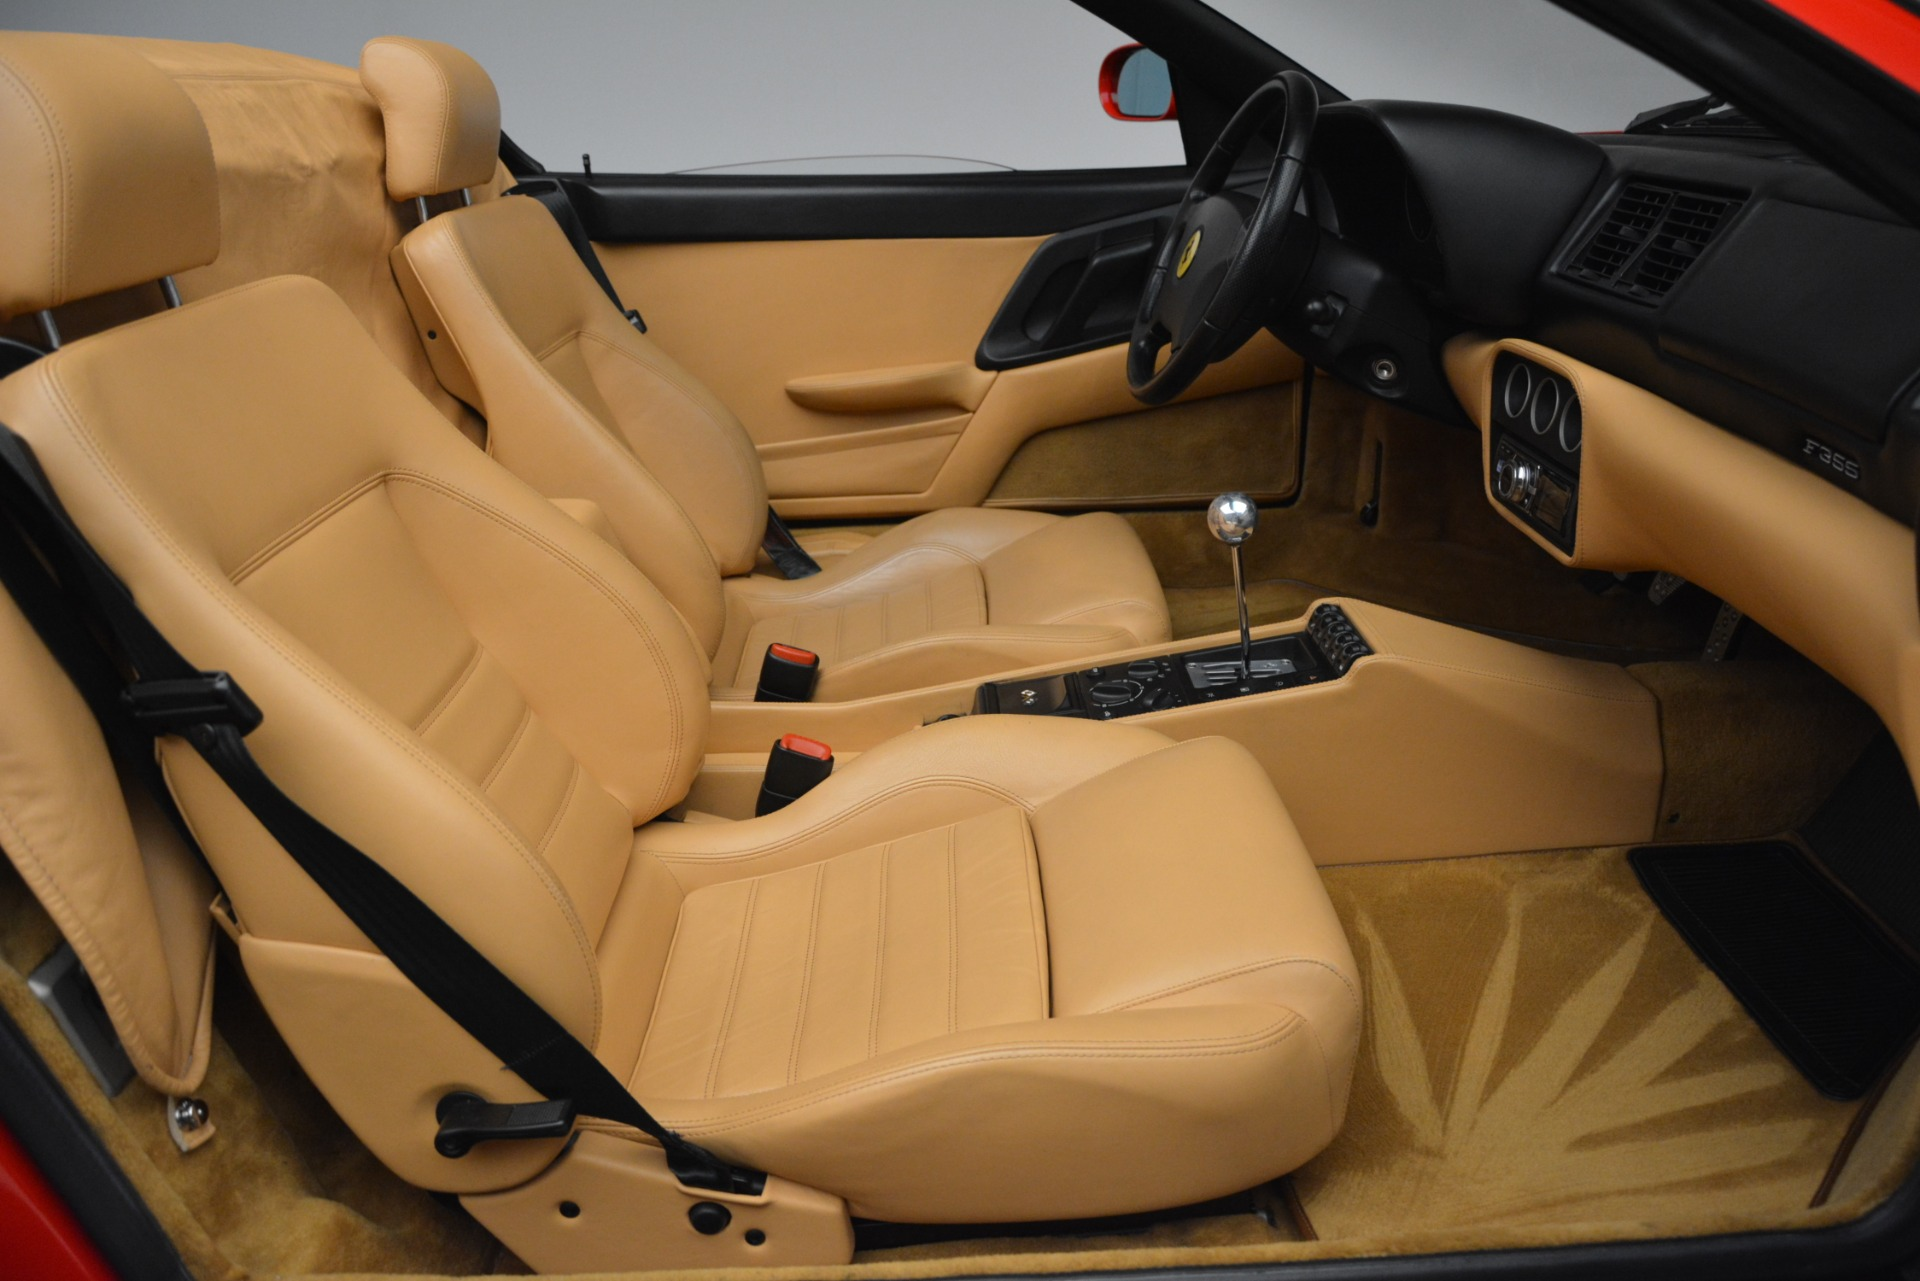 Used 1997 Ferrari 355 Spider 6-Speed Manual For Sale In Greenwich, CT 2735_p33